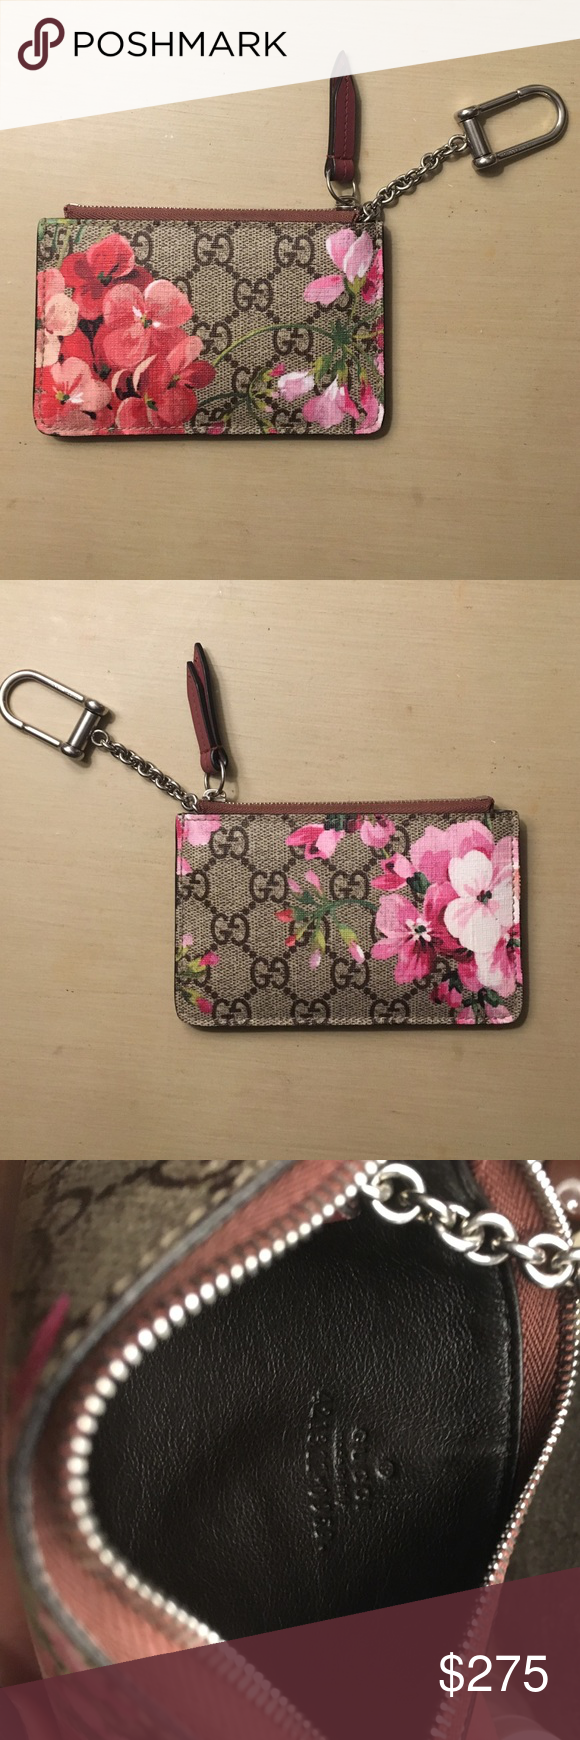 3bcba9cf82e (LIMITED EDITION) Gucci blooms key case